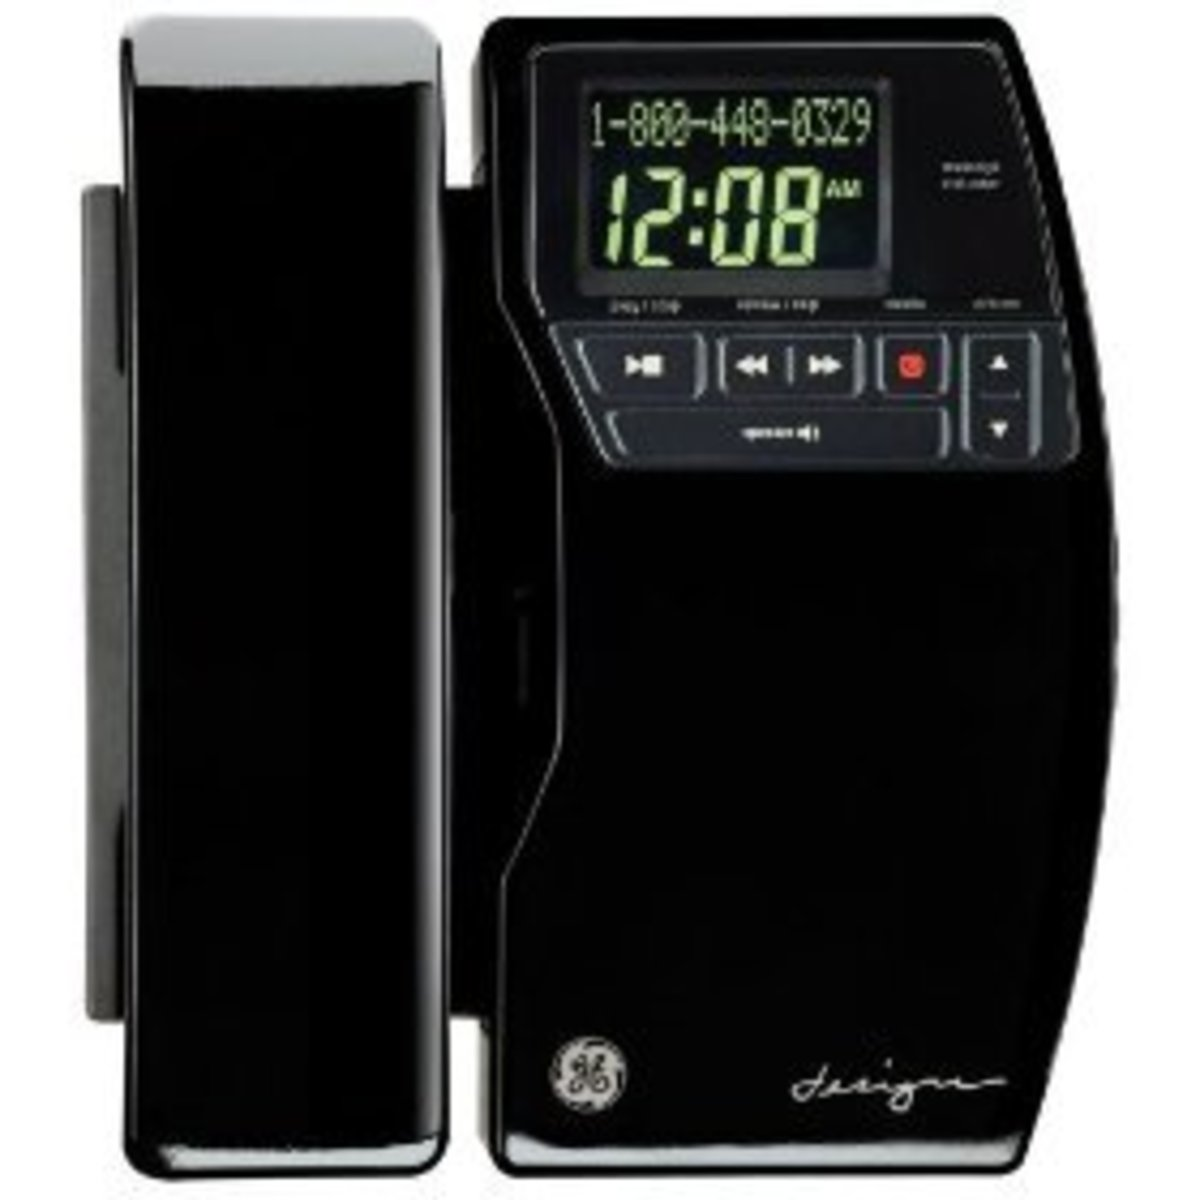 The Best Cordless Wall Mounted Phone Hubpages